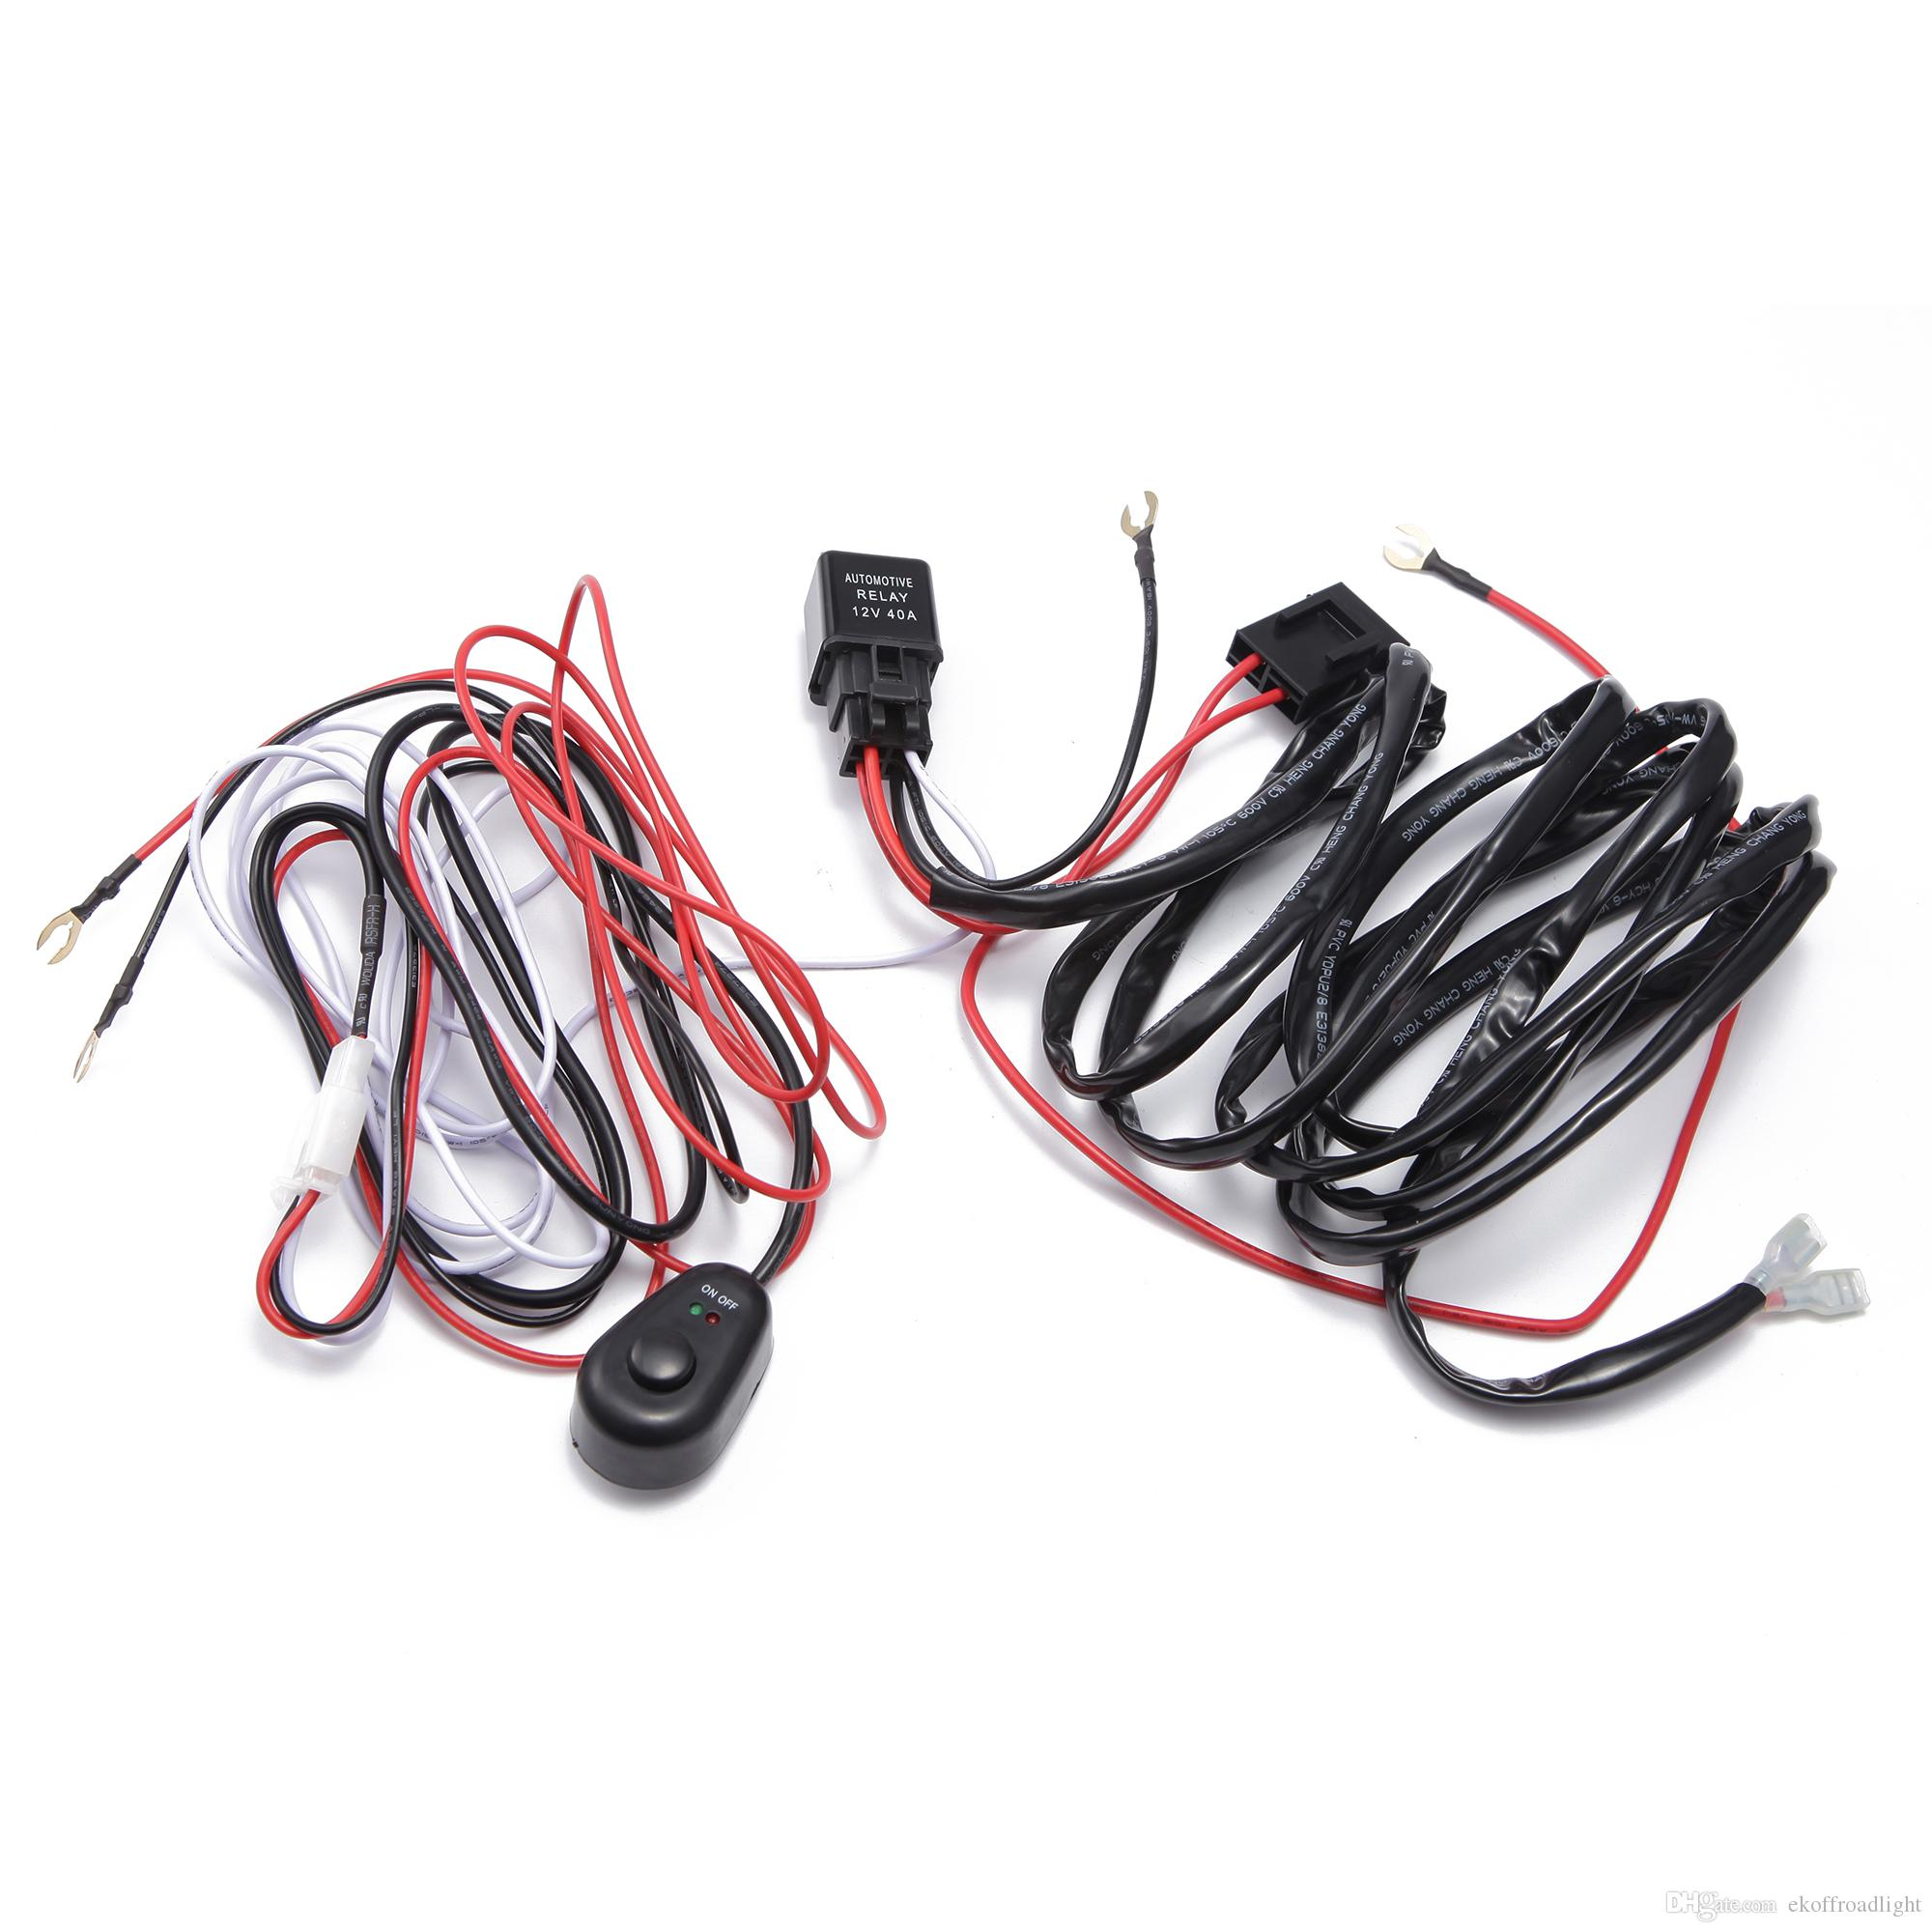 2019 ecahayaku car led light bar wire 2m 12v 24v 40a wiring harness relay  loom cable kit fuse for auto driving off road led work lamp from  ekoffroadlight,